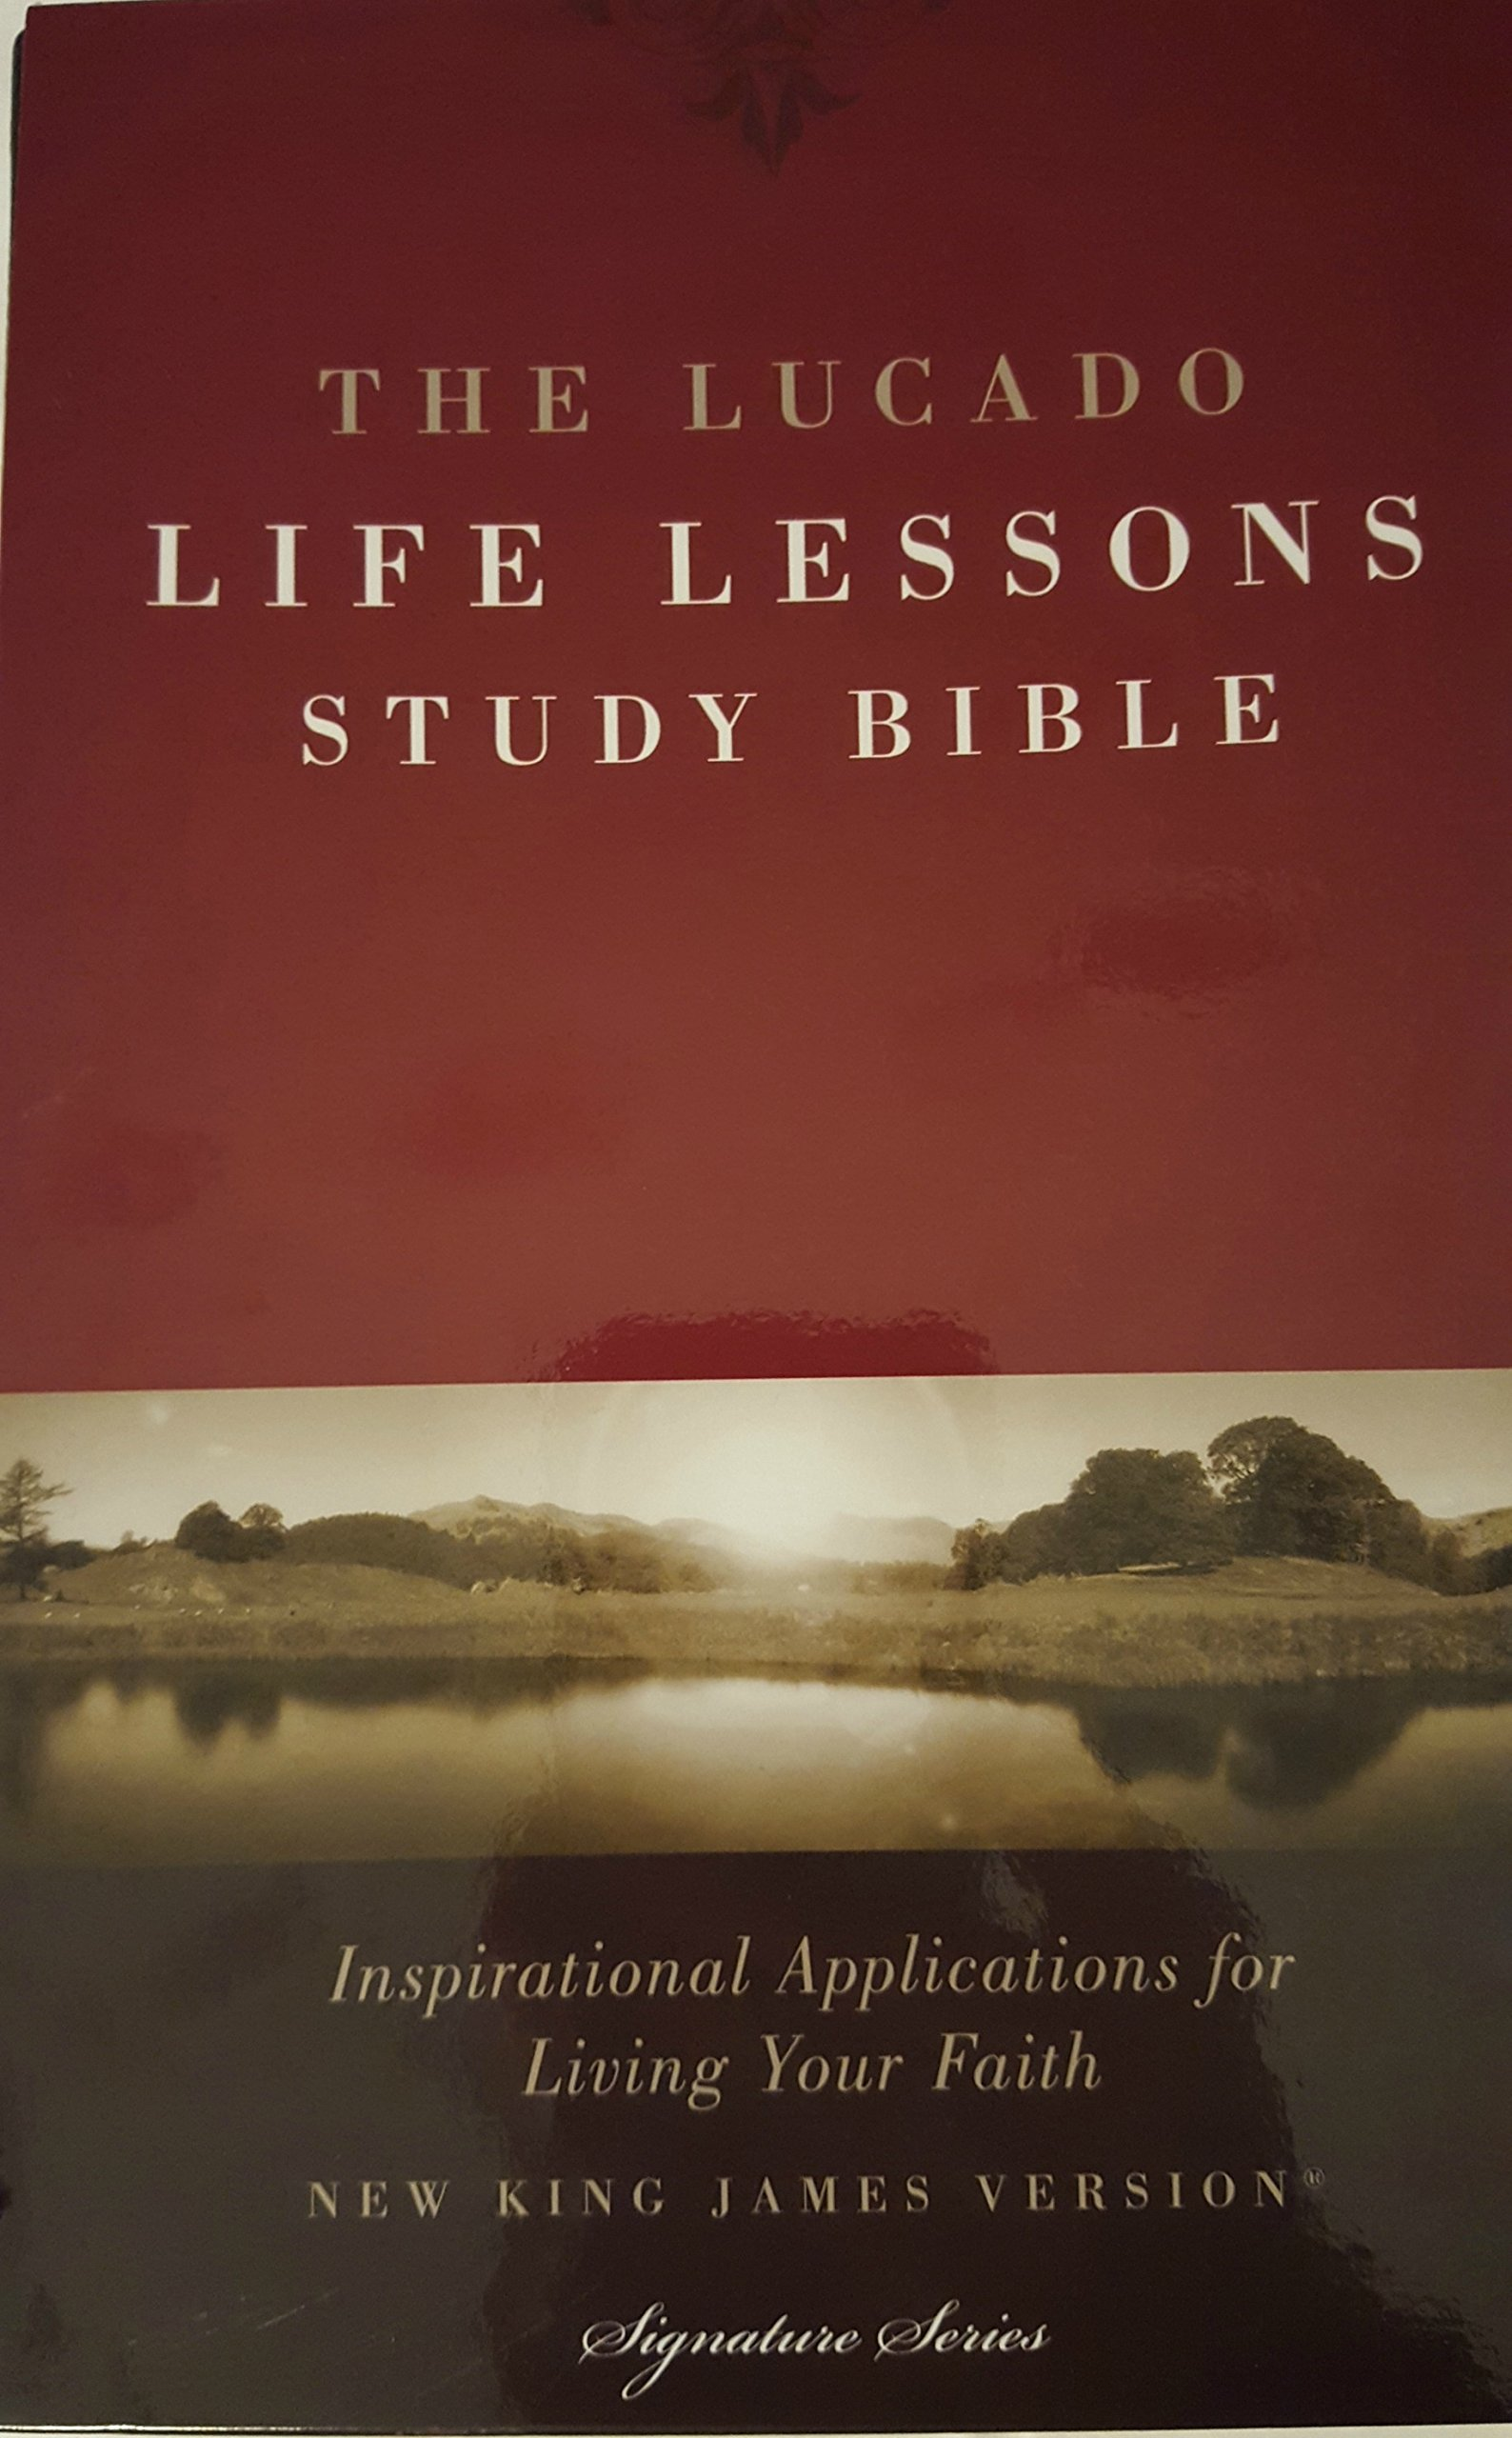 The Lucado Life Lessons Study Bible Inspirational Applications for Living Your Faith New King James Version Signature Series pdf